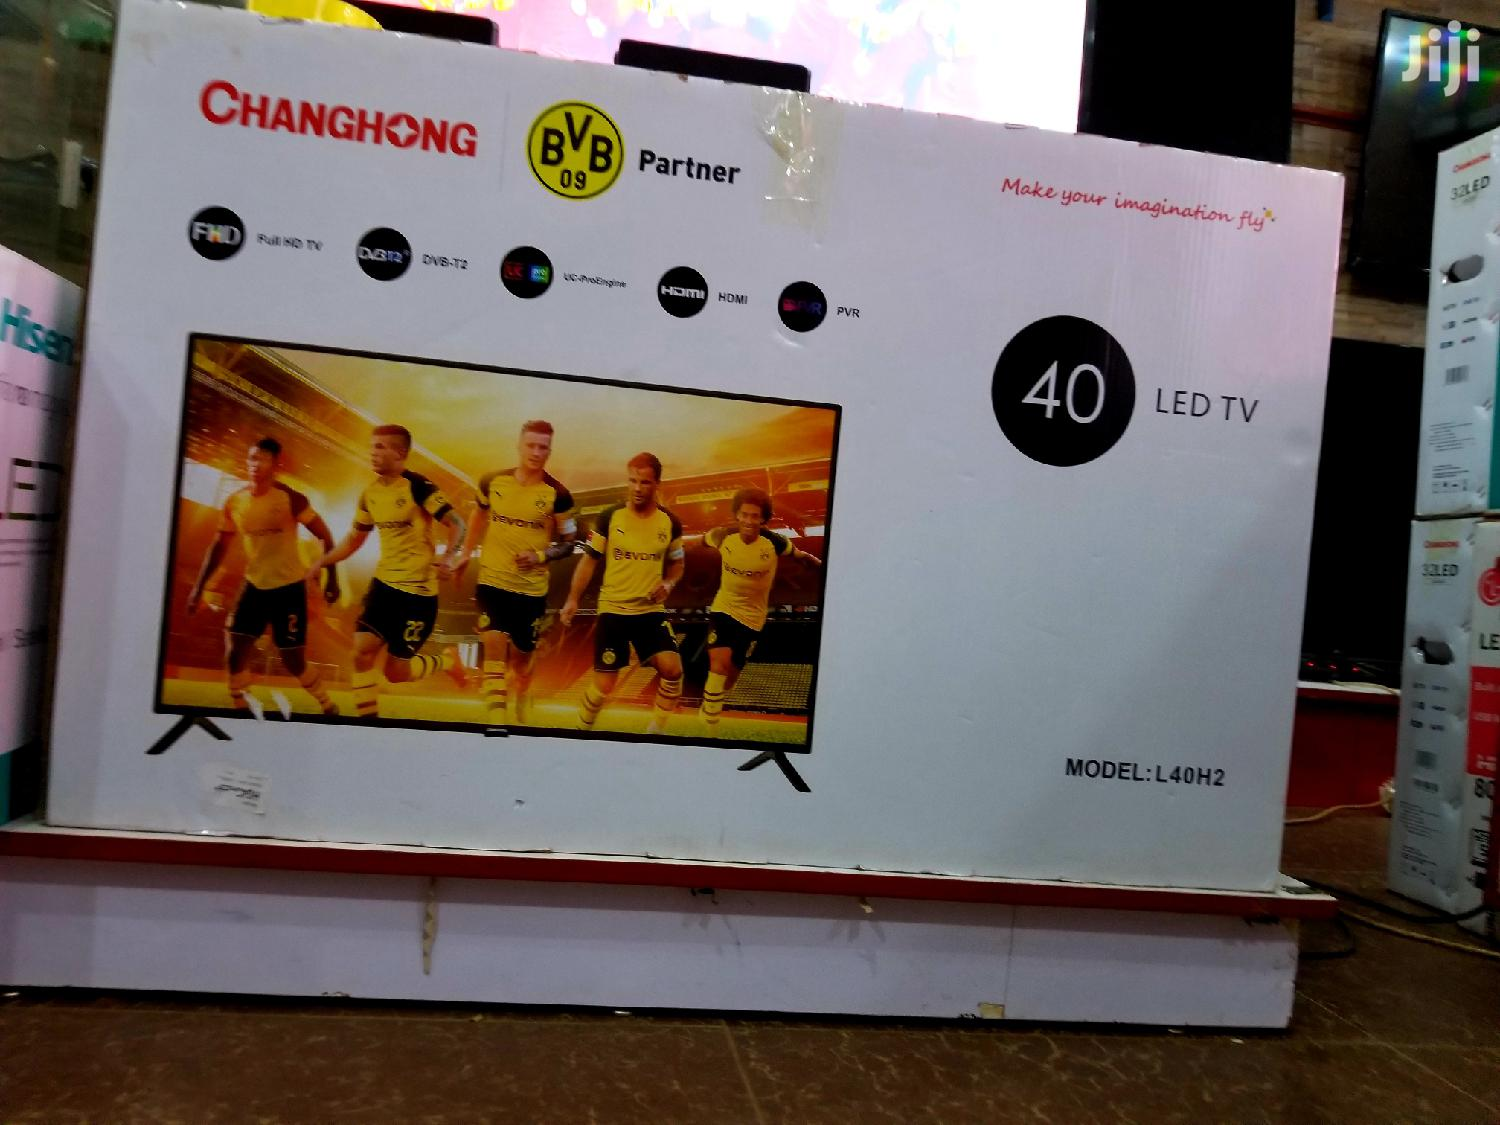 New Changhong LED Flat Screen TV 40 Inches | TV & DVD Equipment for sale in Kampala, Central Region, Uganda